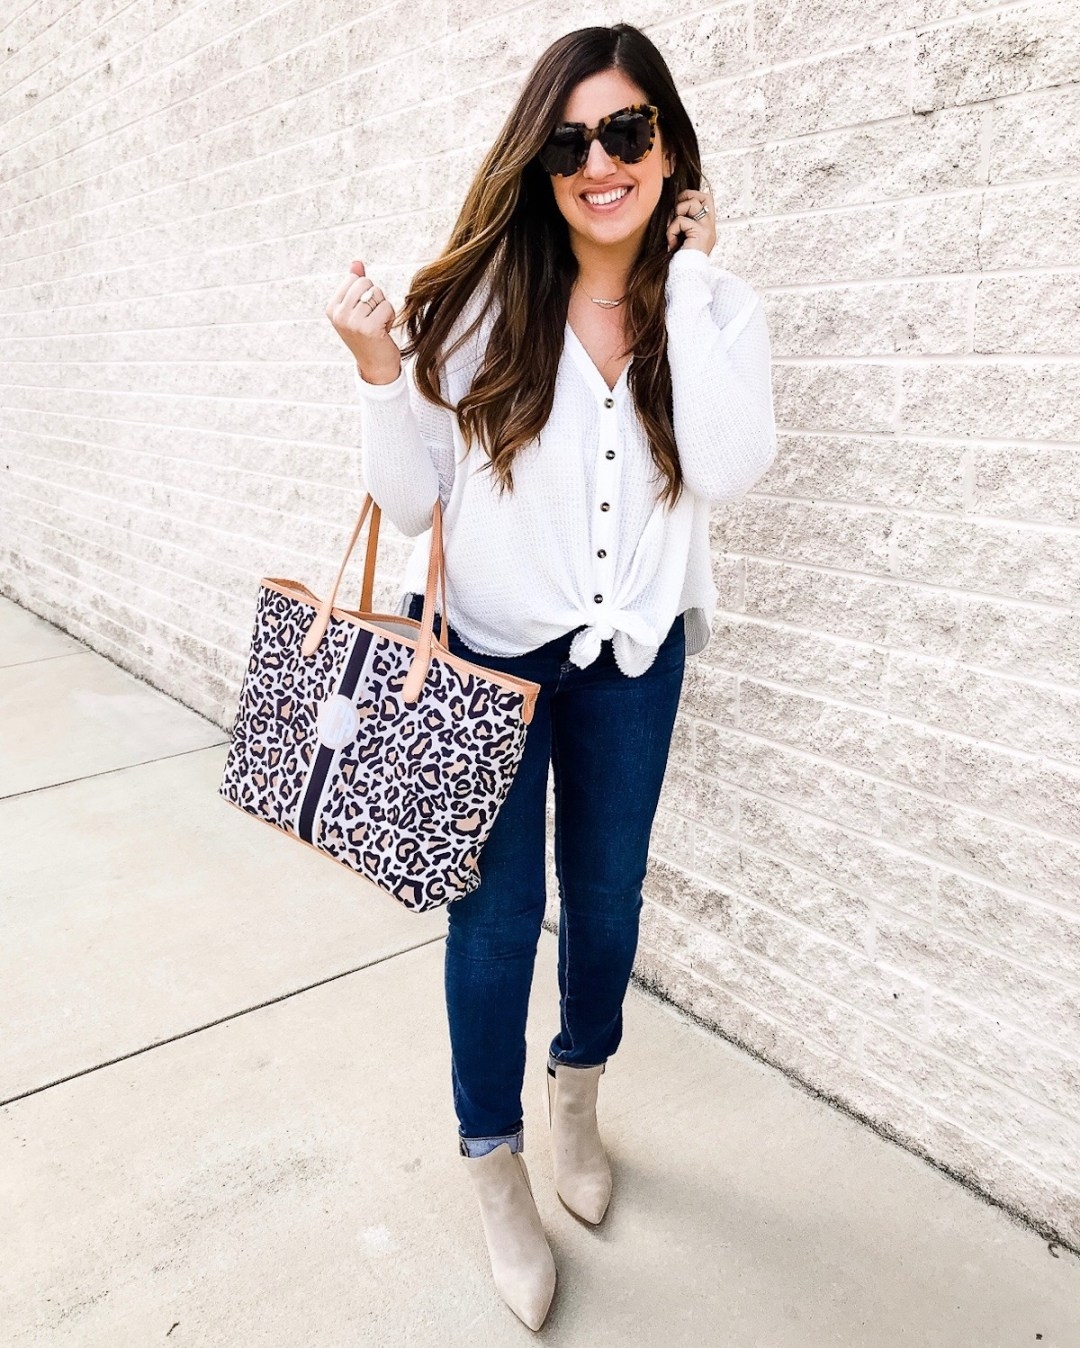 Barrington Gifts St Anne Tote, Leopard Diaper Bag Tote worn by Jaime Cittadino of Sunflowers and Stilettos blog